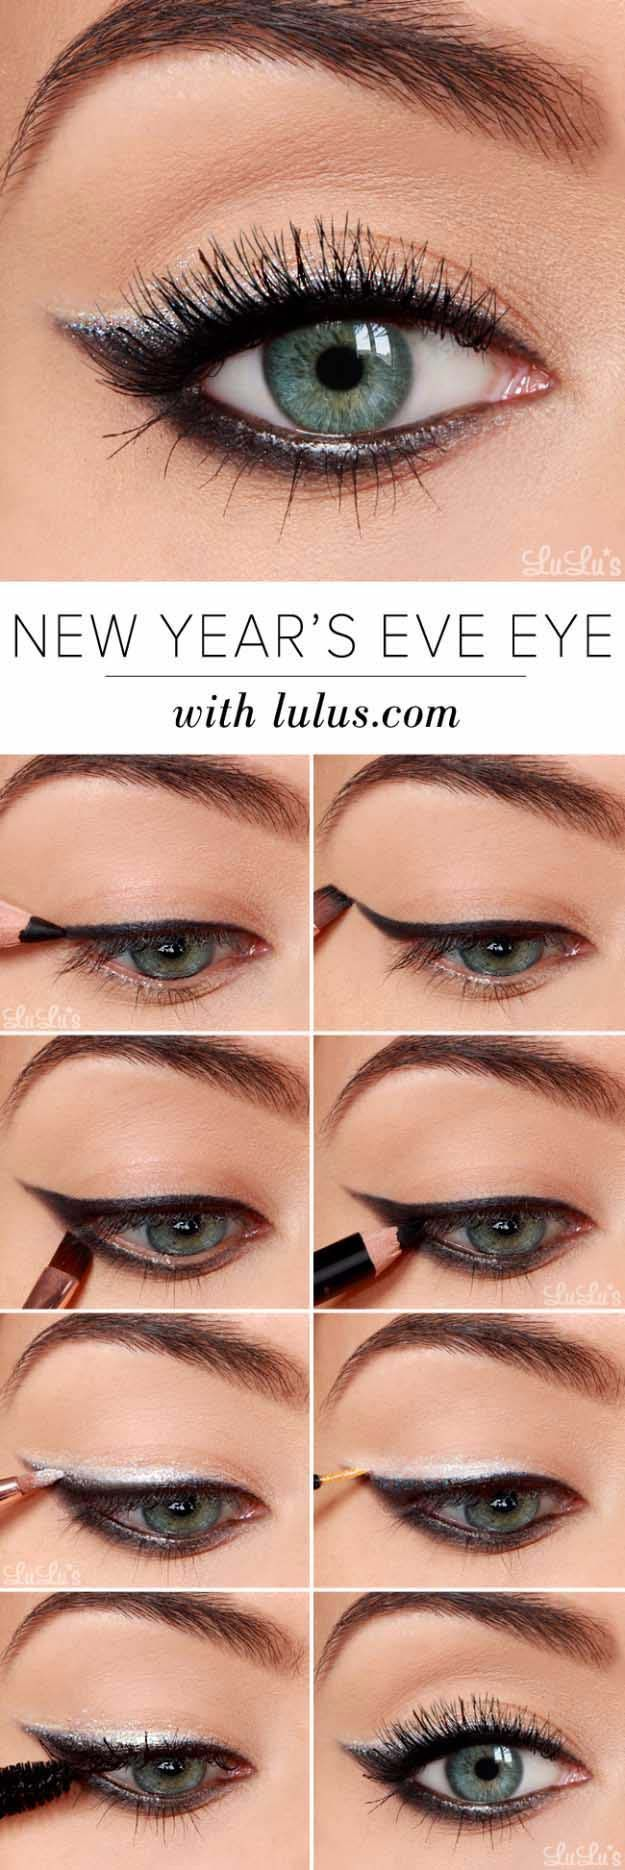 Eyeshadow Tutorials for Beginners - New Year's Eve Eyeshadow Tutorial - Step By Step Tutorial Guides For Beginners with Green, Hazel, Blue and For Brown Eyes - Matte, Natural and Everyday Looks That Are Sure to Impress - Even an Awesoem Video on a Dramatic but Easy Smokey Look - thegoddess.com/eyeshadow-tutorials-beginner #easyhairstylesforbeginners